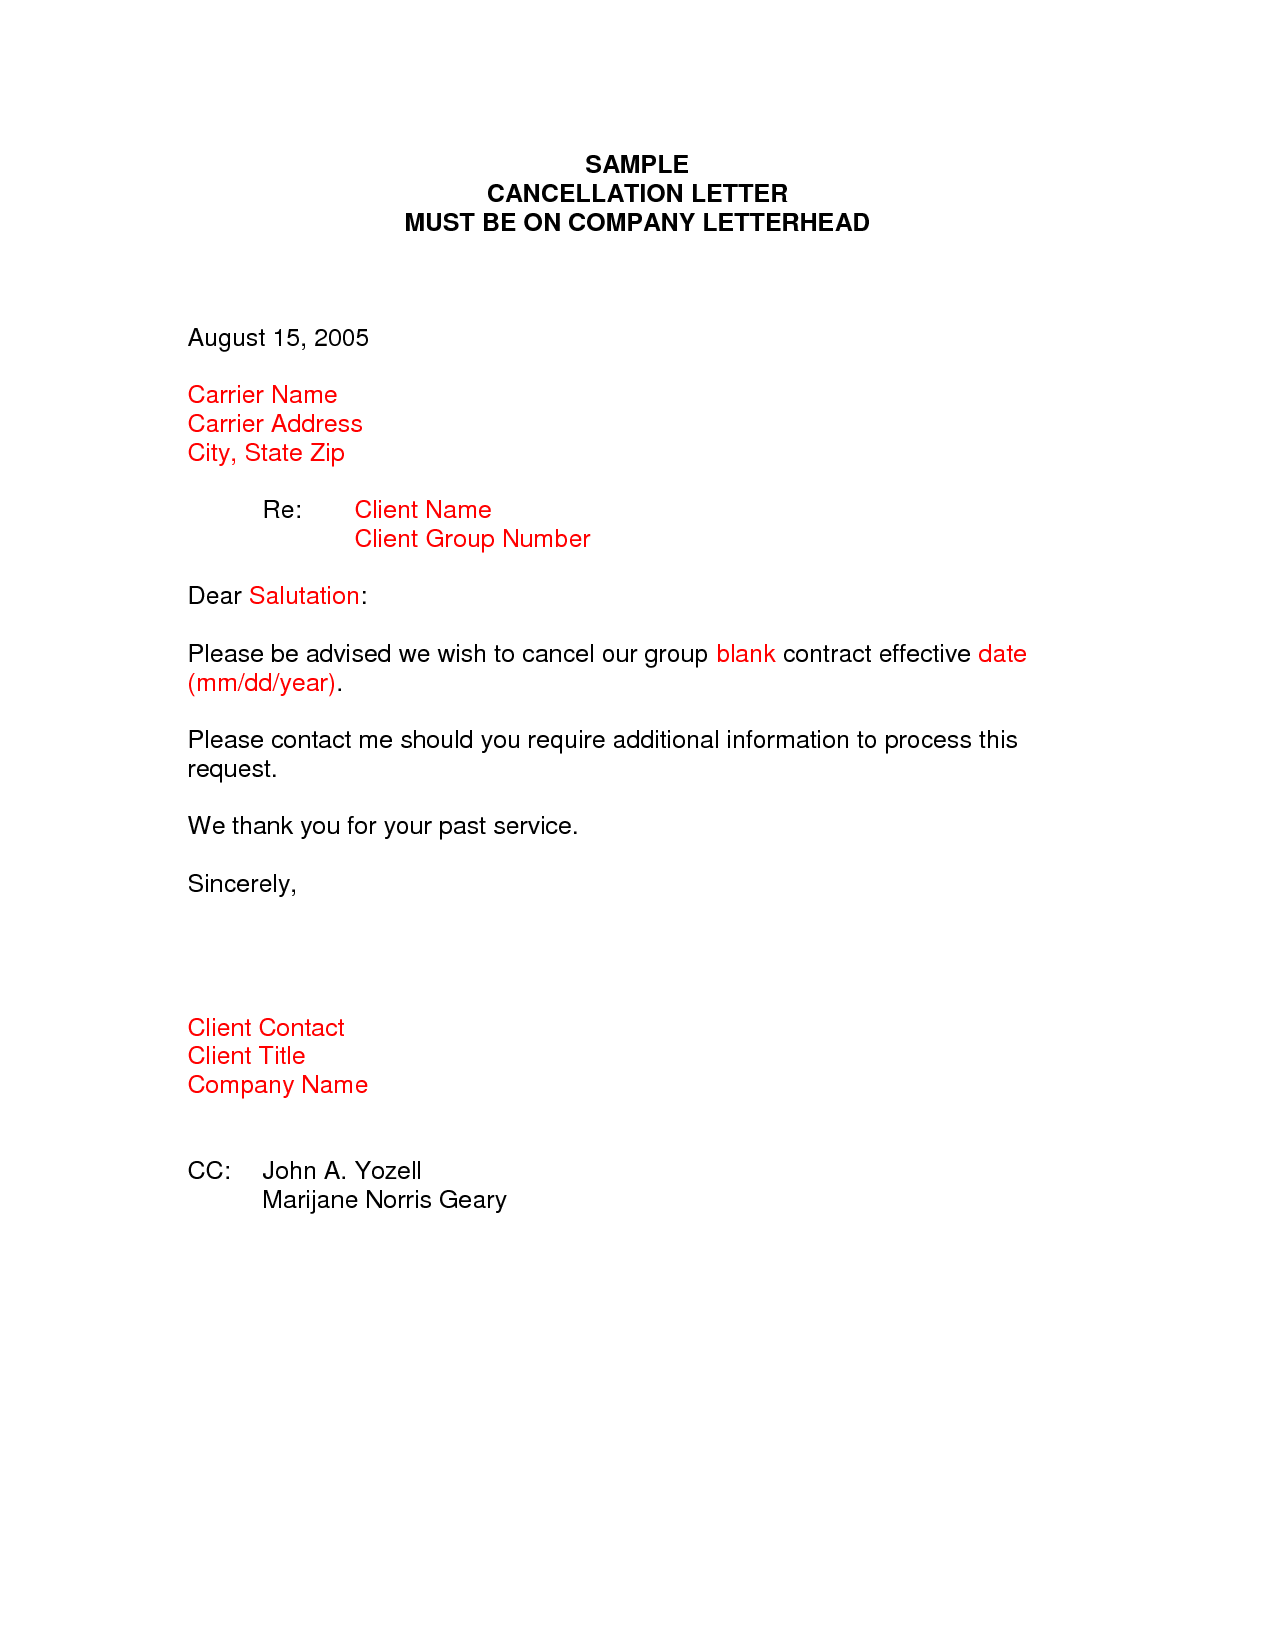 Sample termination letter format business case examples free cover sample termination letter format business case examples free cover for job cancellation samples image spiritdancerdesigns Gallery